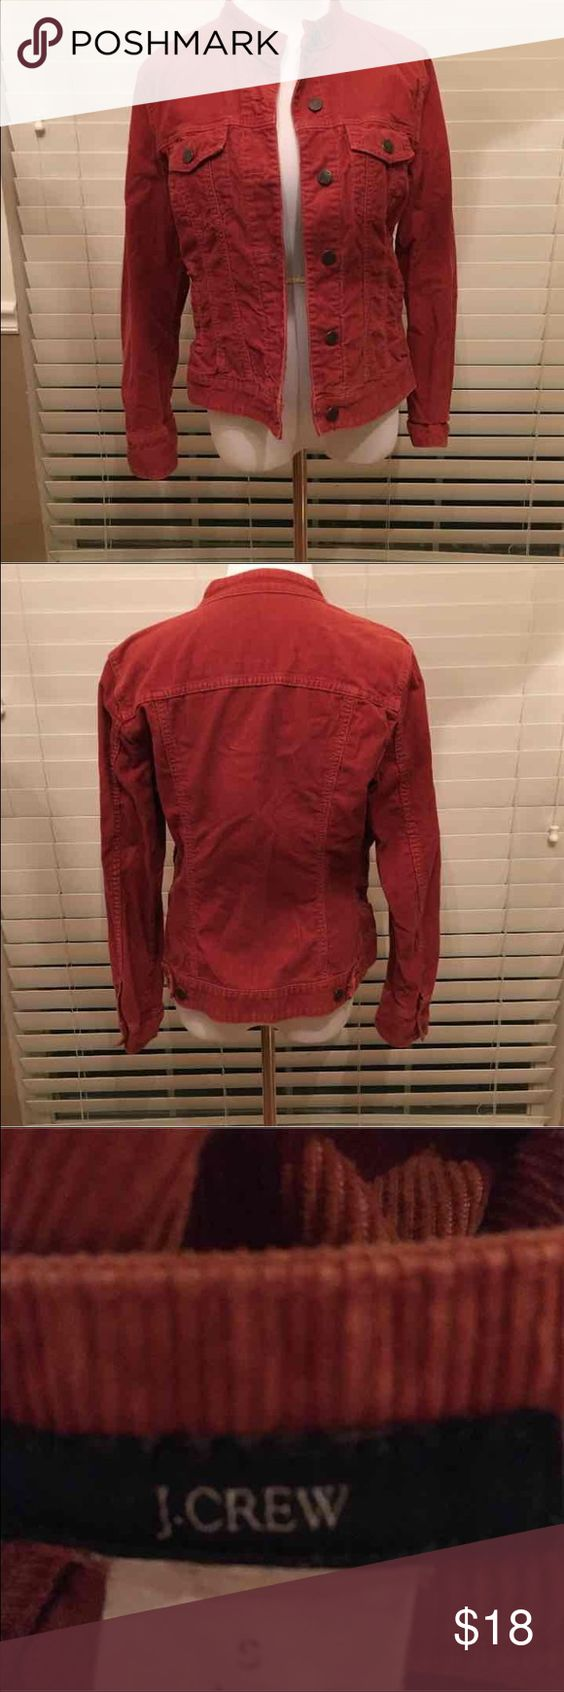 J Crew corduroy jacket This vibrant rust colored jacket is perfect for the fall months ahead. It is in excellent used condition. This jacket has a distressed quality and looks very natural. There are no stains, rips or tears. J Crew Jackets & Coats